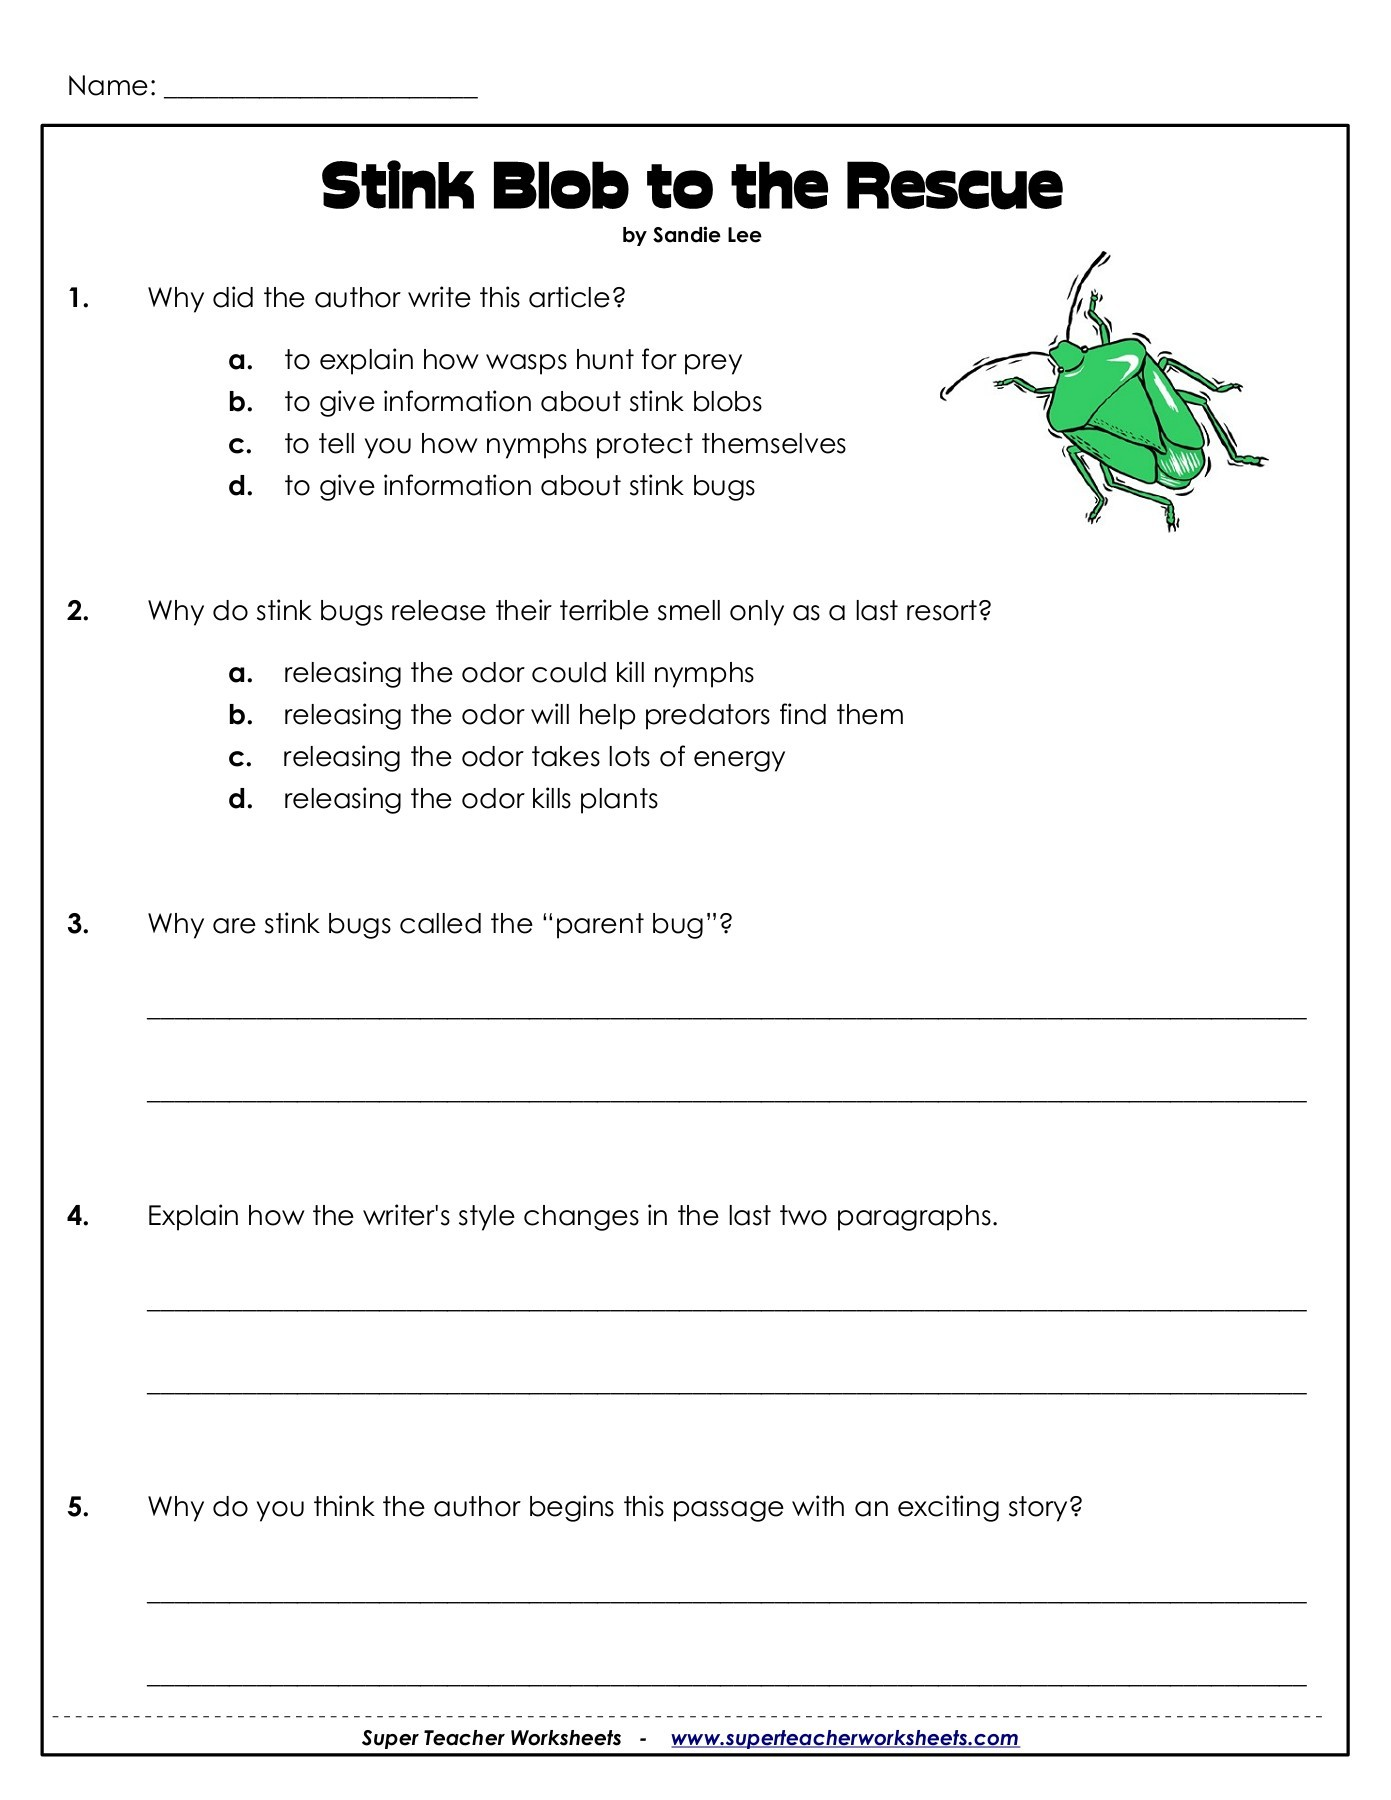 Super Teachers Worksheets Com